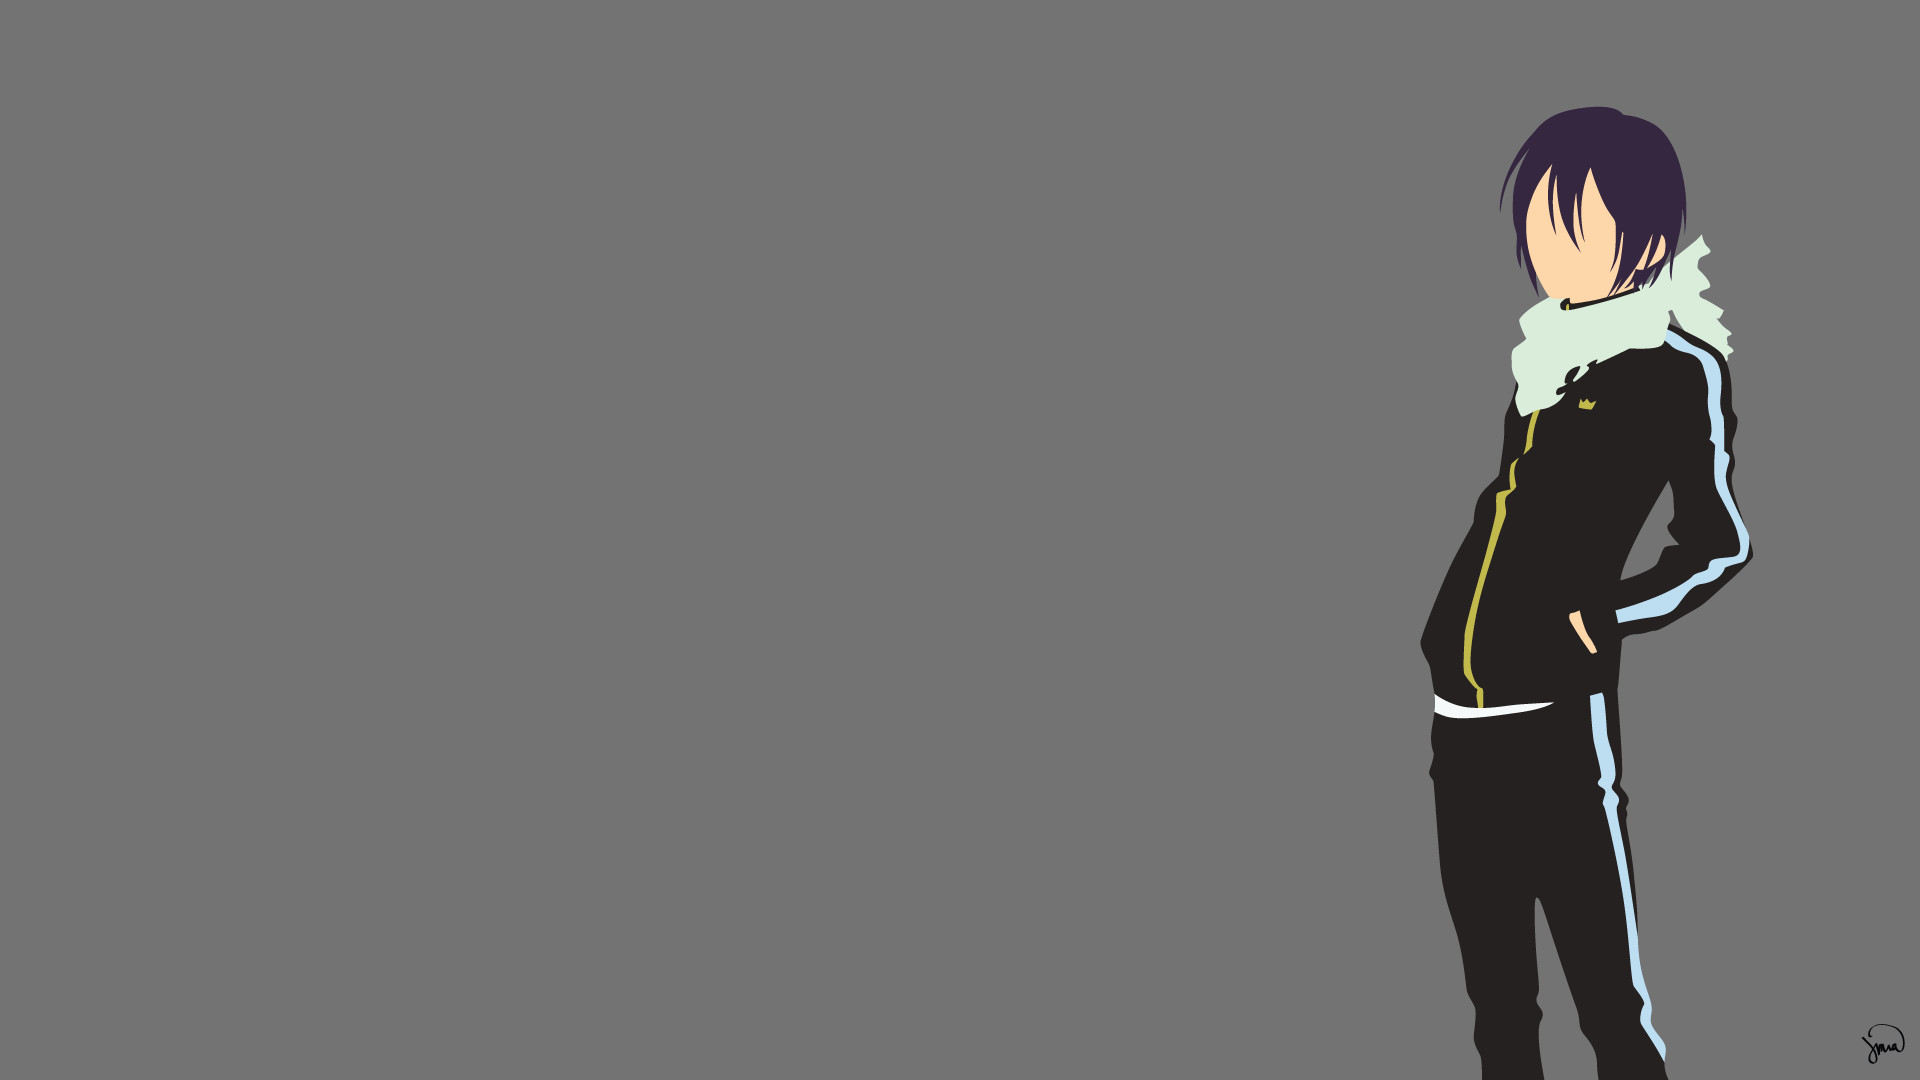 yato-noragami-minimalist-wallpaper-by-greenmapple17.png (1920×1080) |  Wallpapers/Backgrounds | Pinterest | Noragami, Anime and Manga